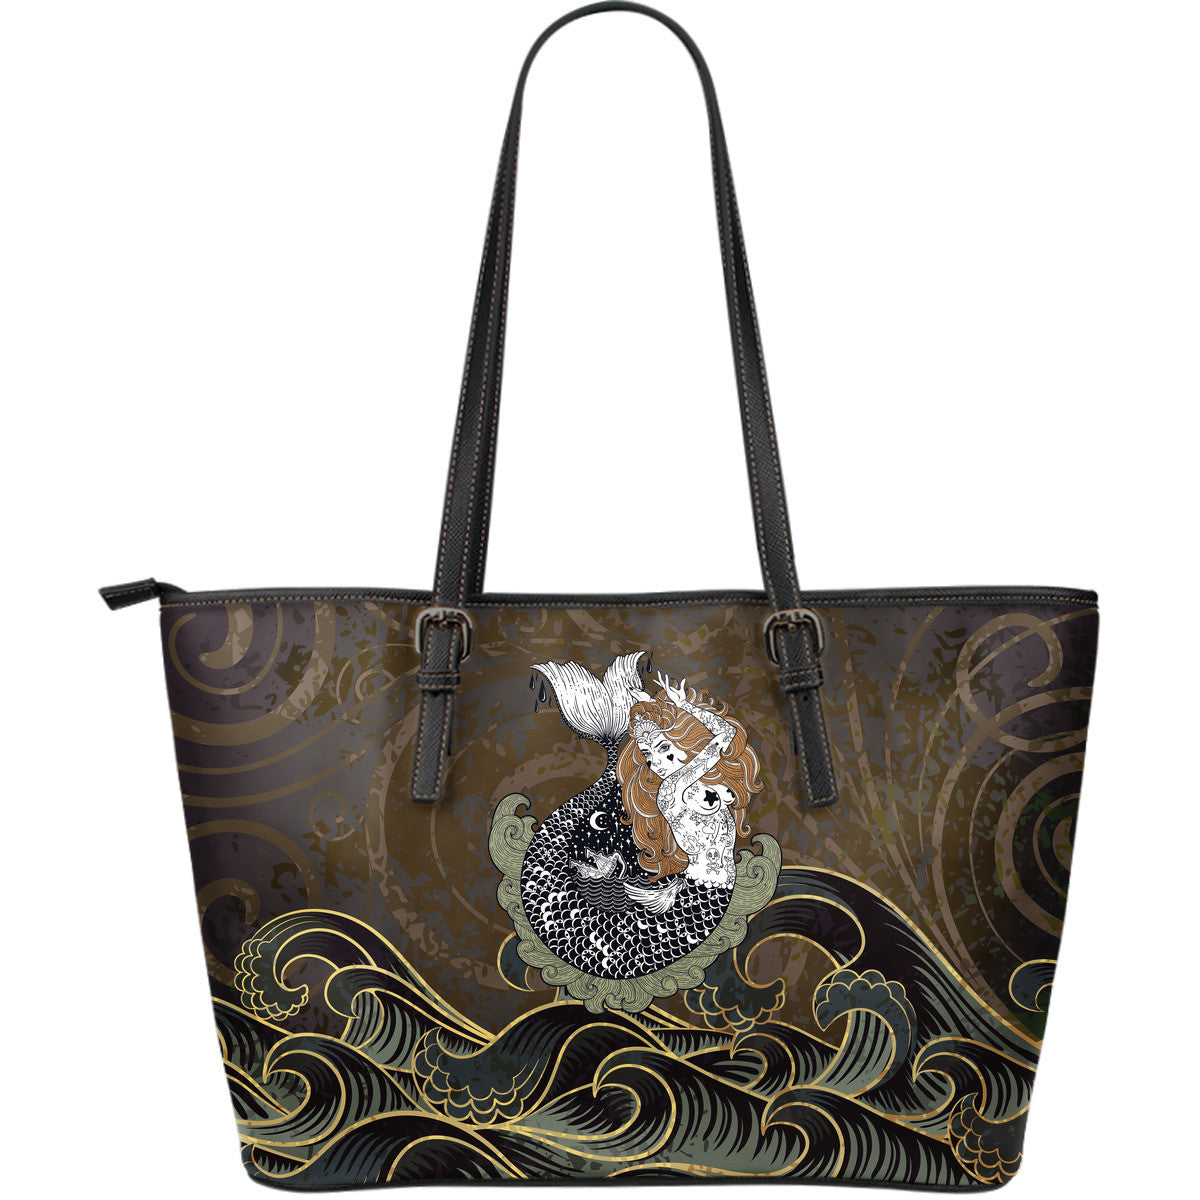 Mermaid Night Large Leather Tote Bag